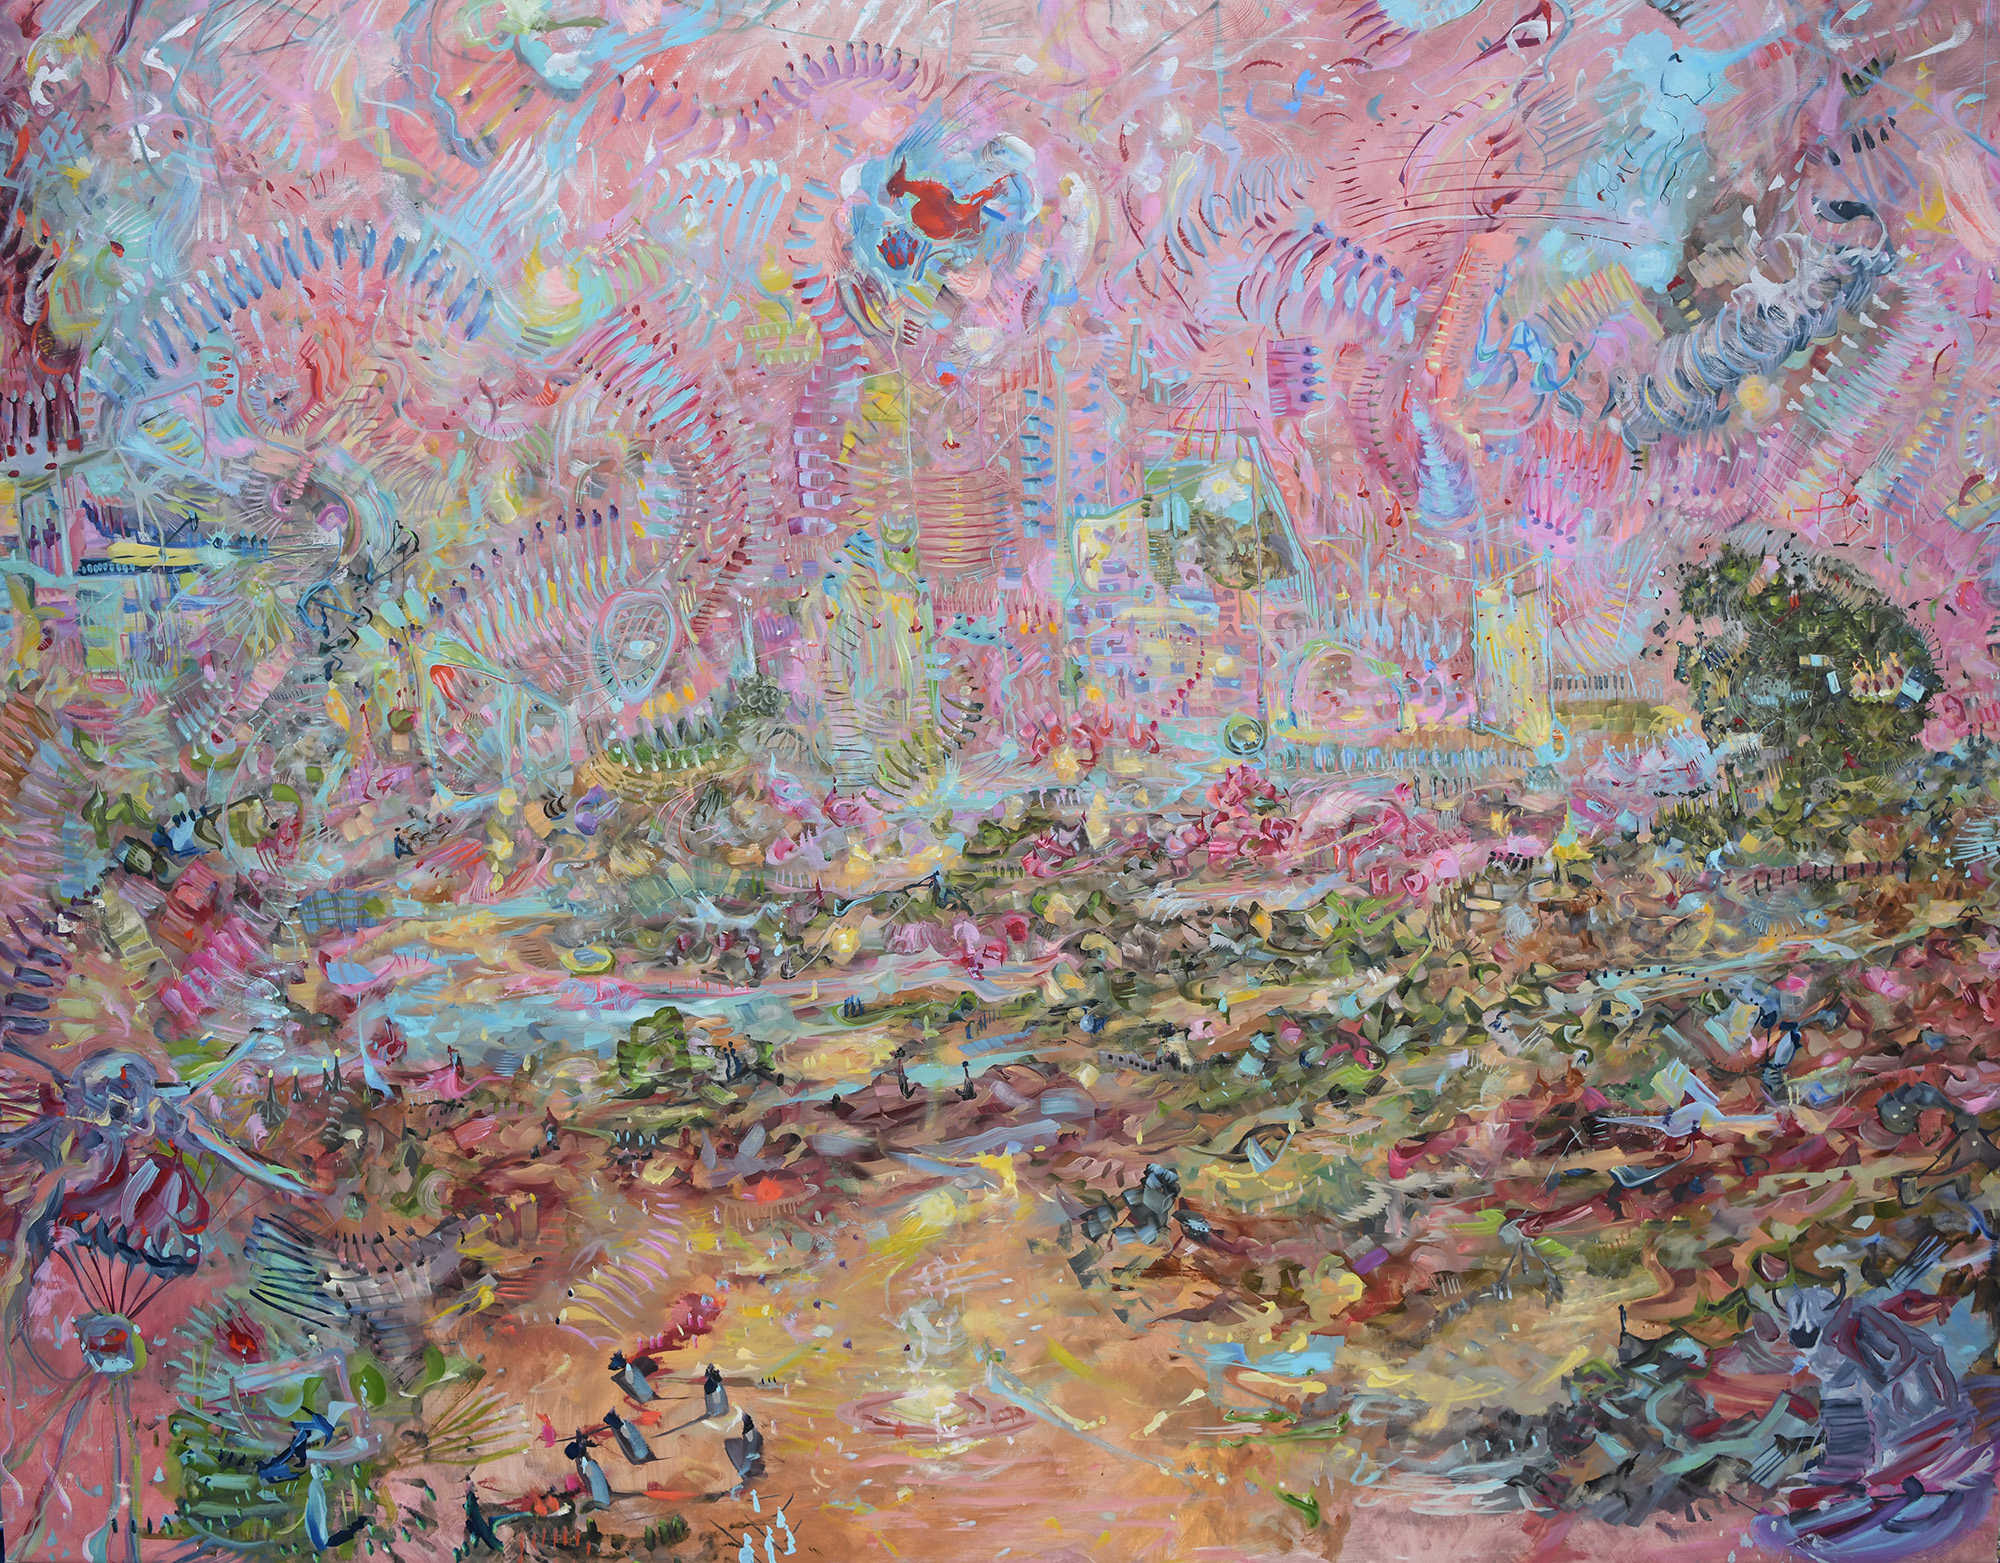 rOilTea - A Momentous Erosion of Improvised Rhythms   2012 Oil on linen 86 x 112 inches